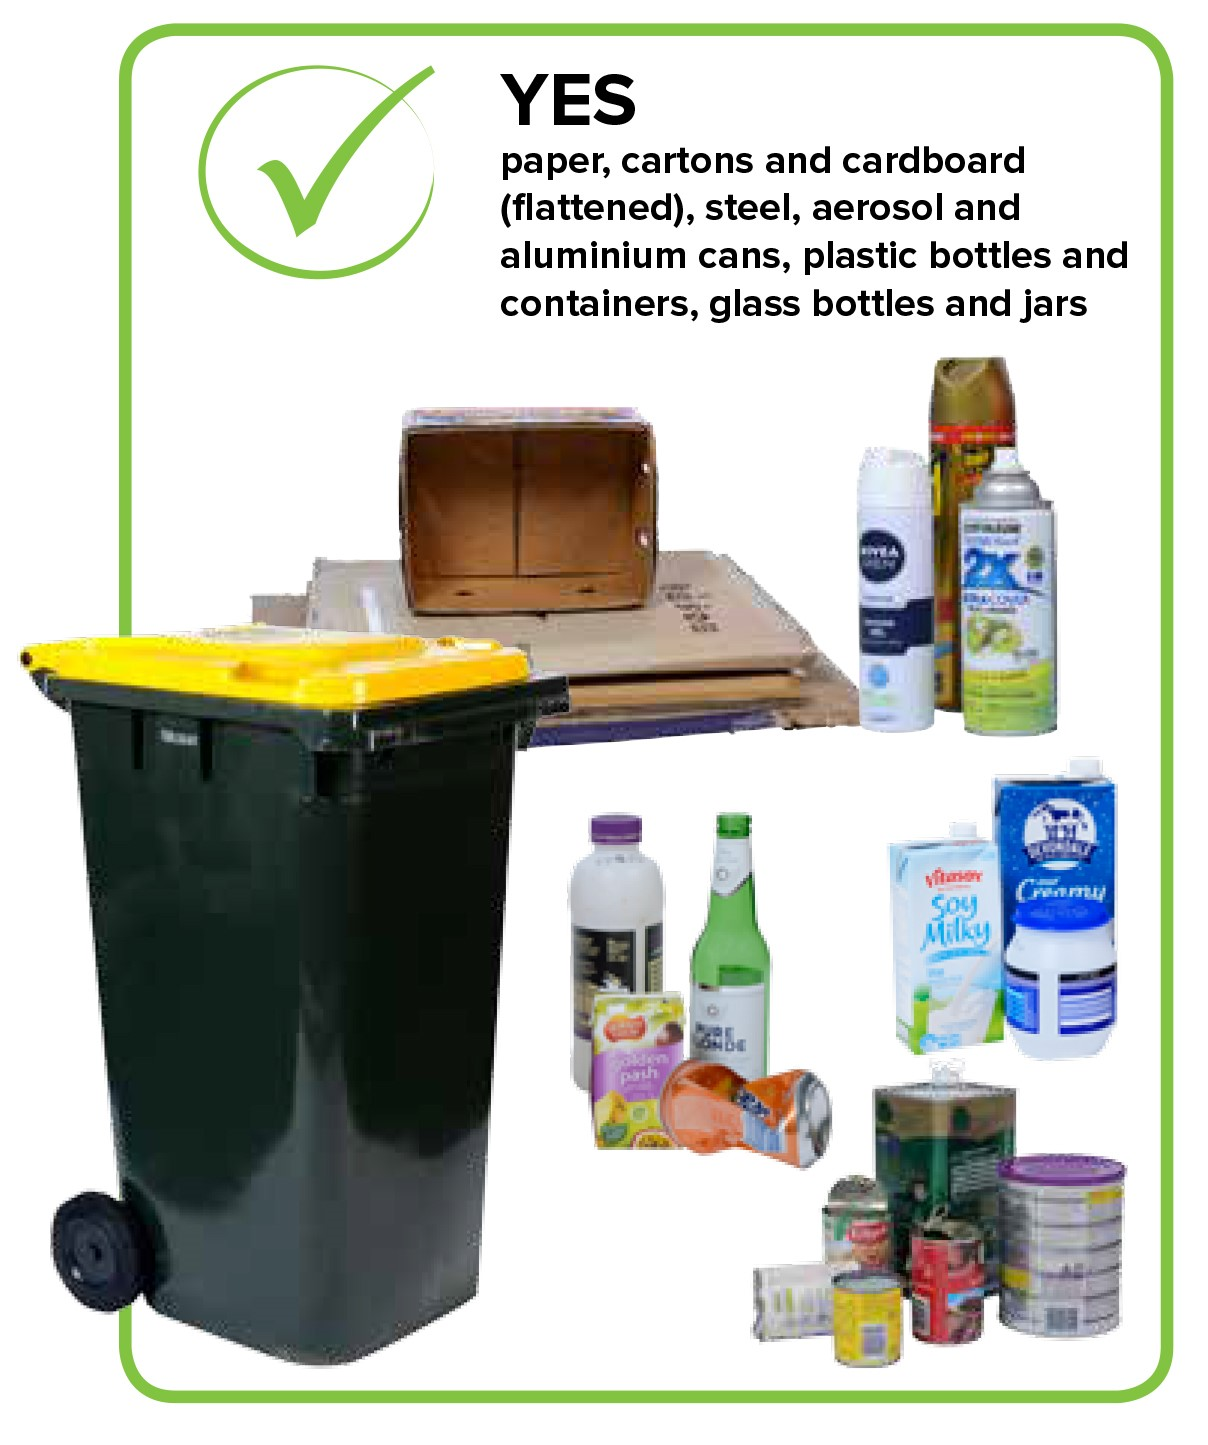 Examples of what can be recycled